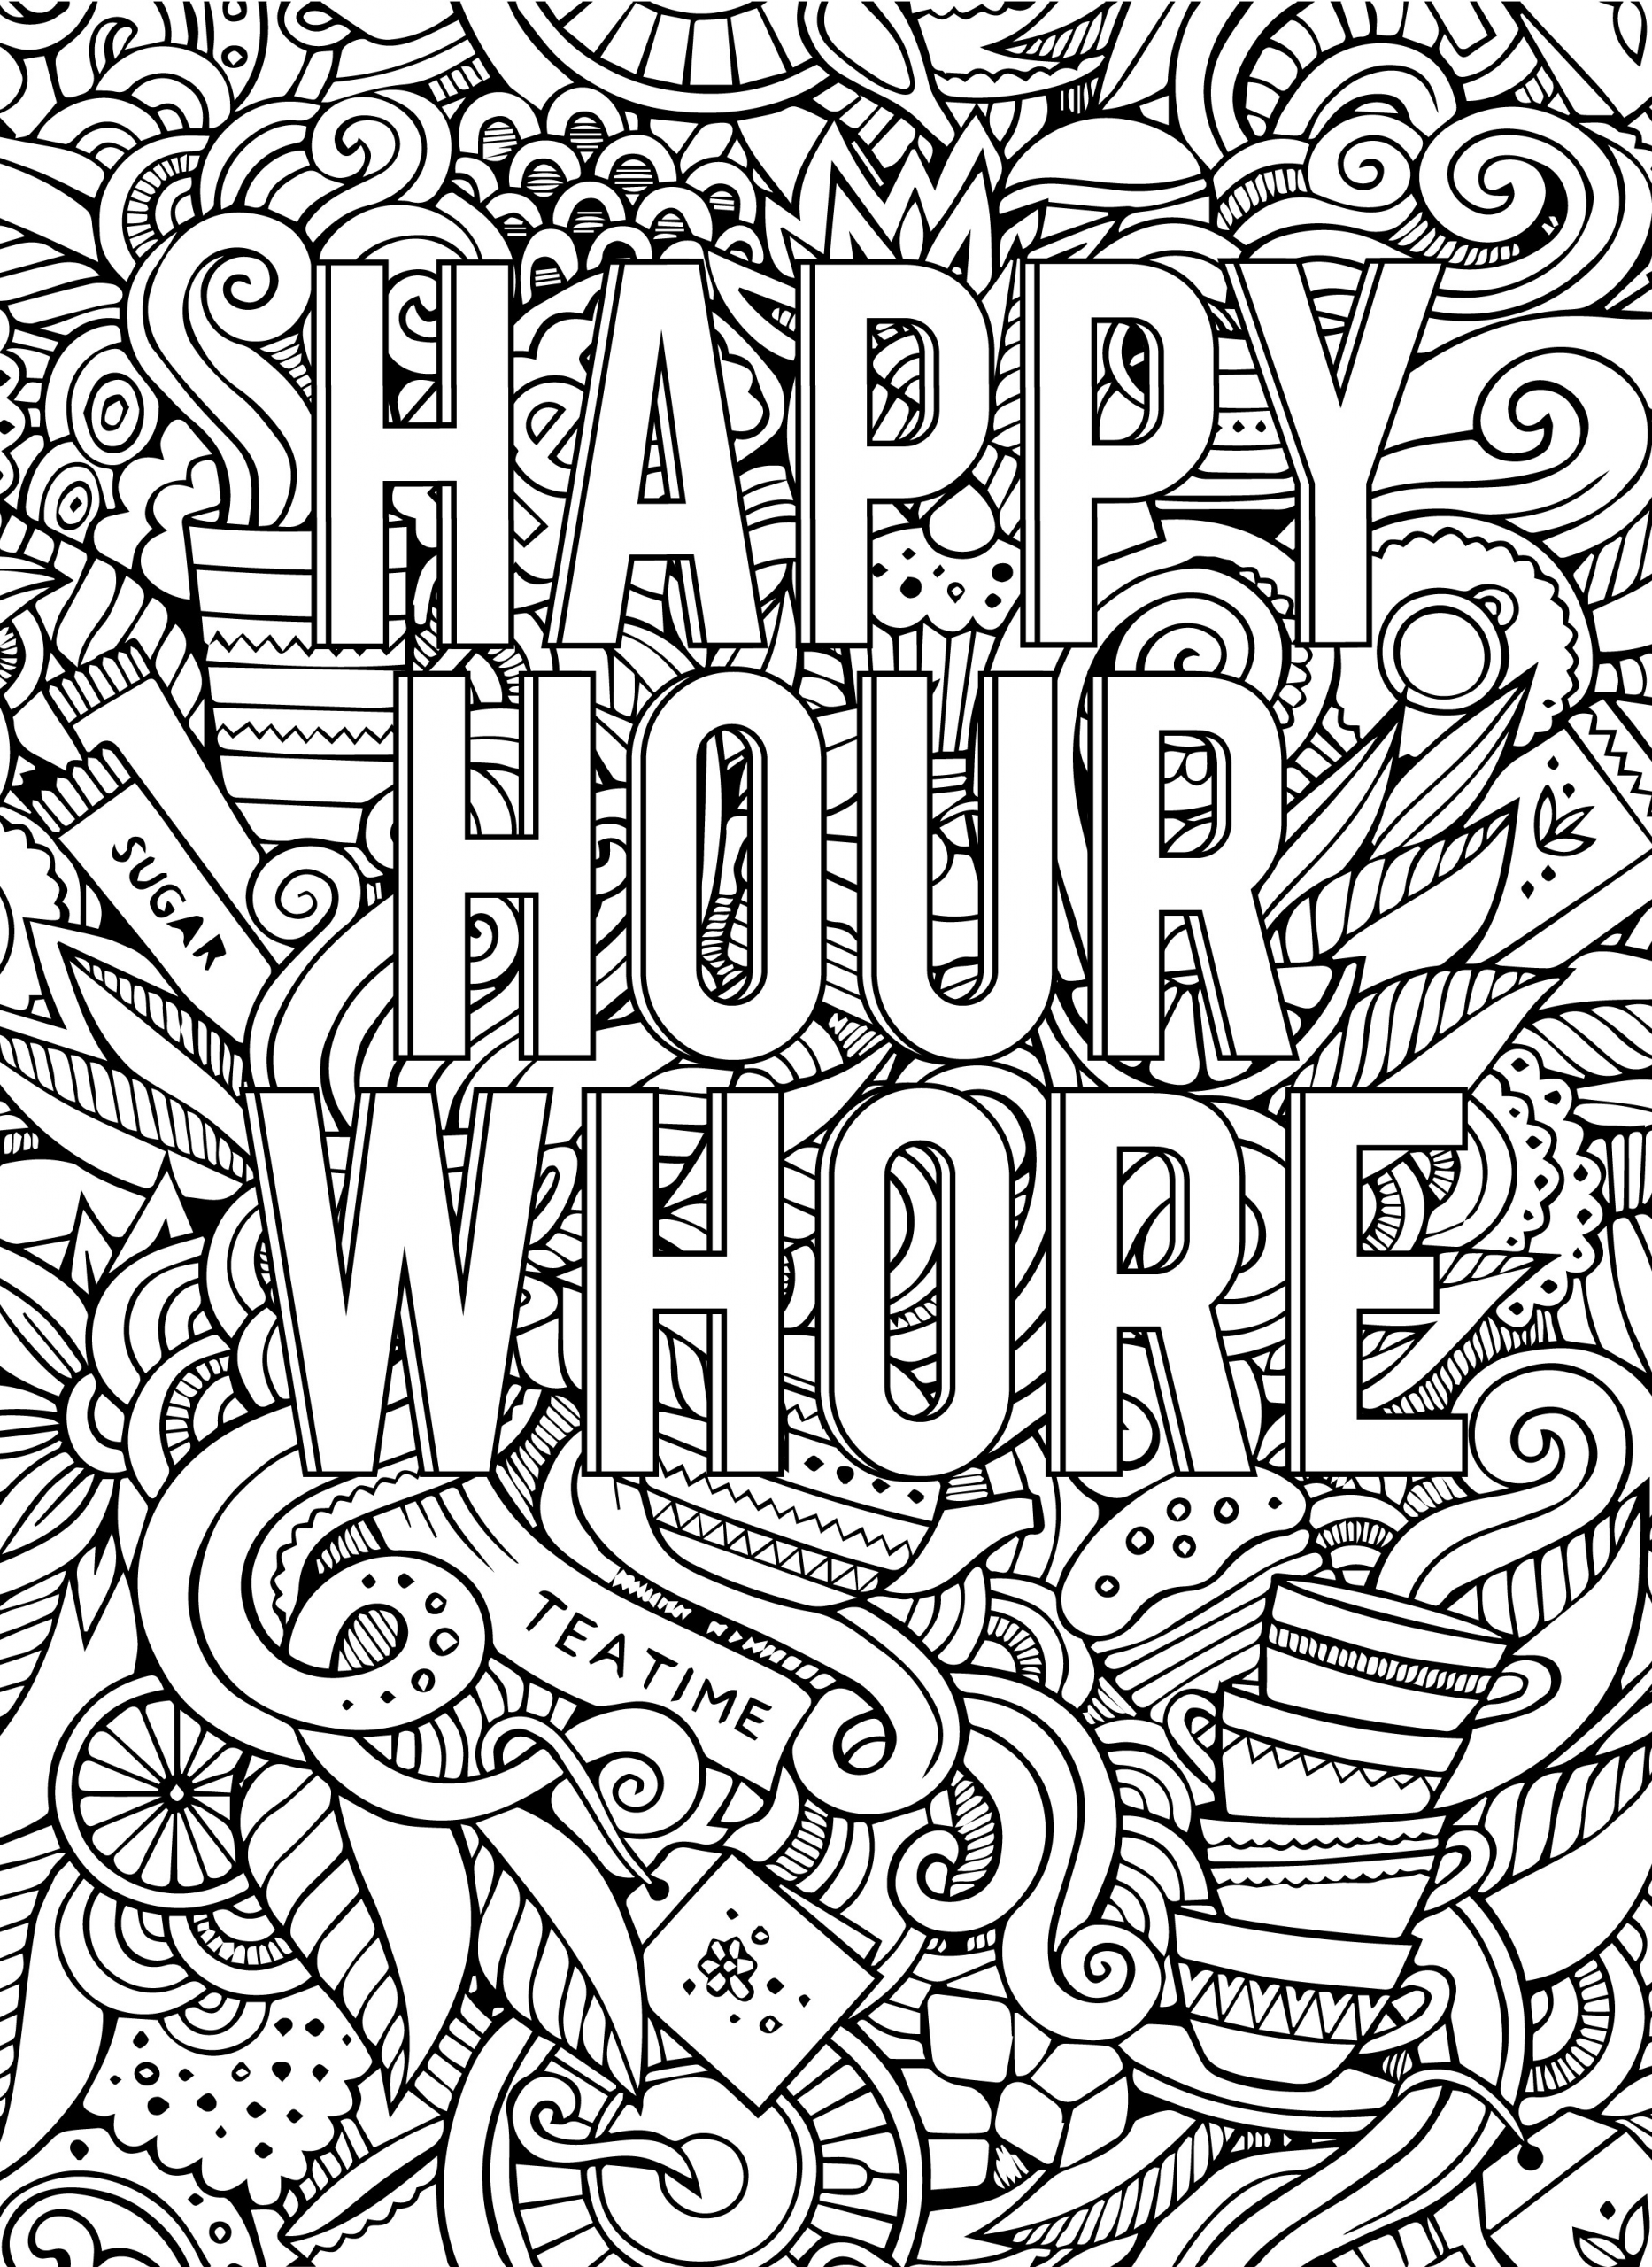 Adult Swear Coloring Pages  Cannabis Fantasy Cool Coloring Book Pages